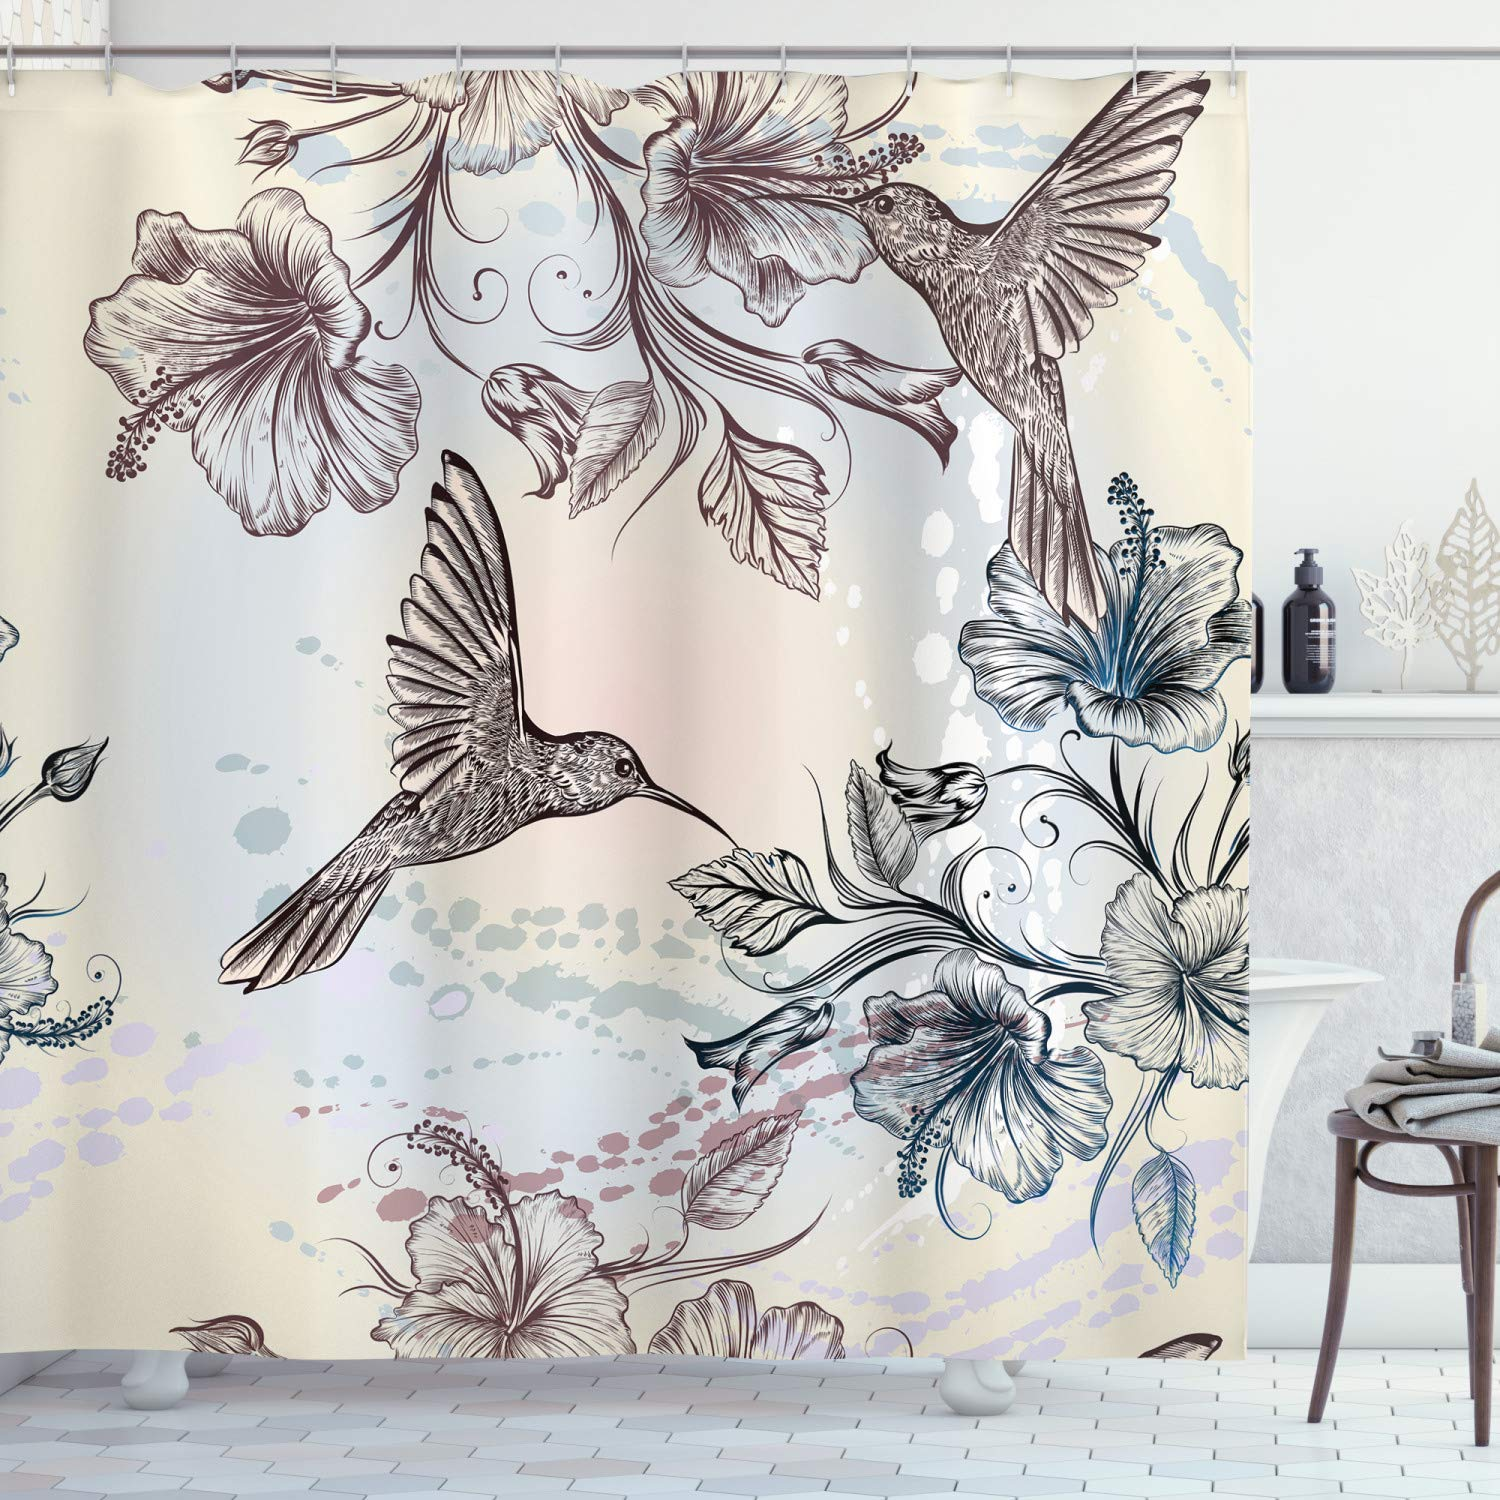 """Ambesonne Hummingbird Shower Curtain, Birds and Hibiscus Flowers Nostalgia Antique Design Classical Print, Cloth Fabric Bathroom Decor Set with Hooks, 70"""" Long, Teal Brown"""